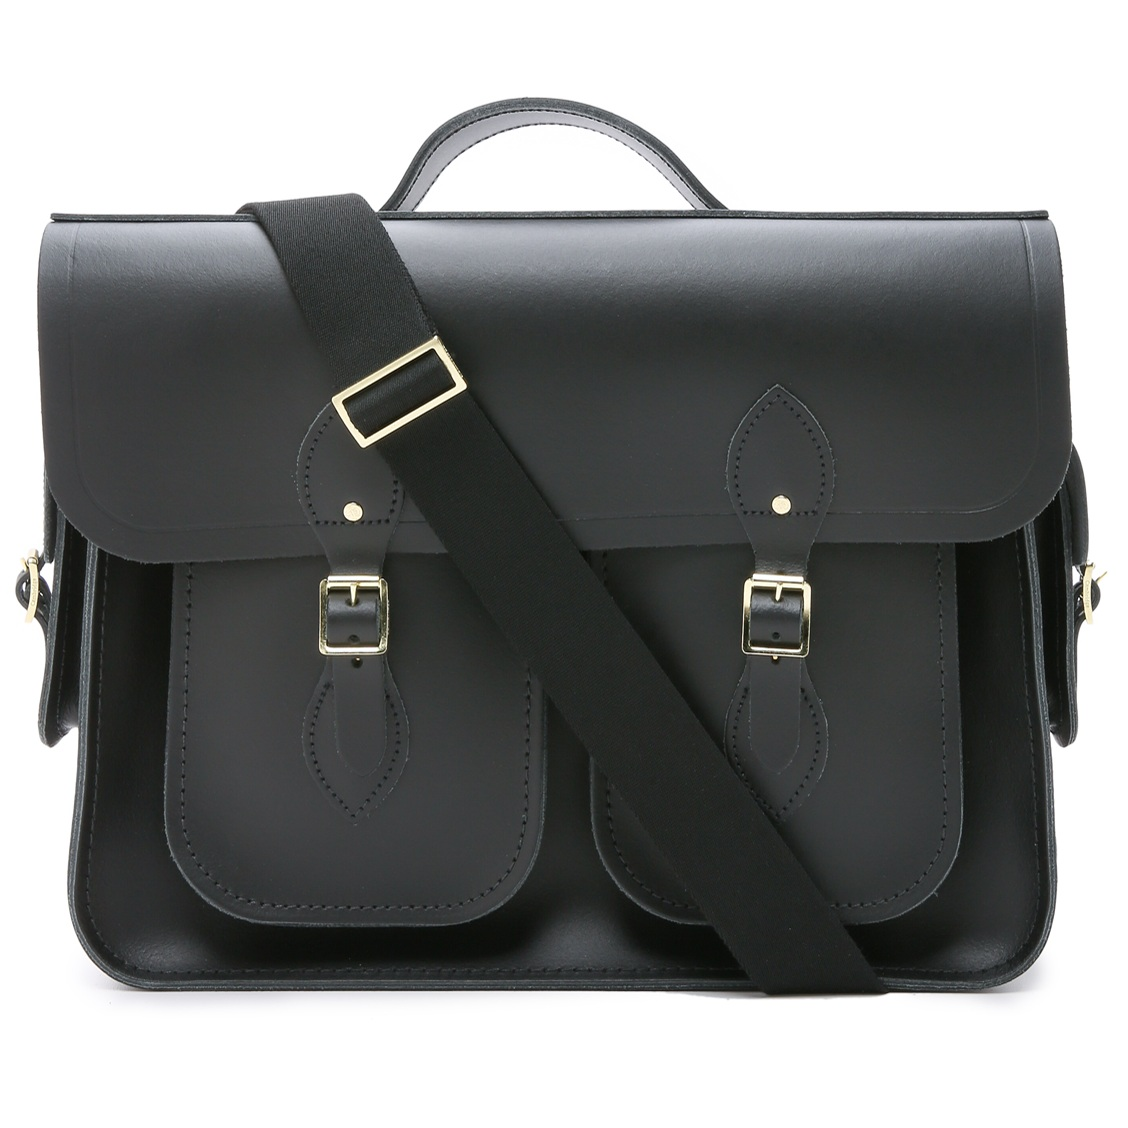 Cambridge Satchel Multi Pocket Batchel